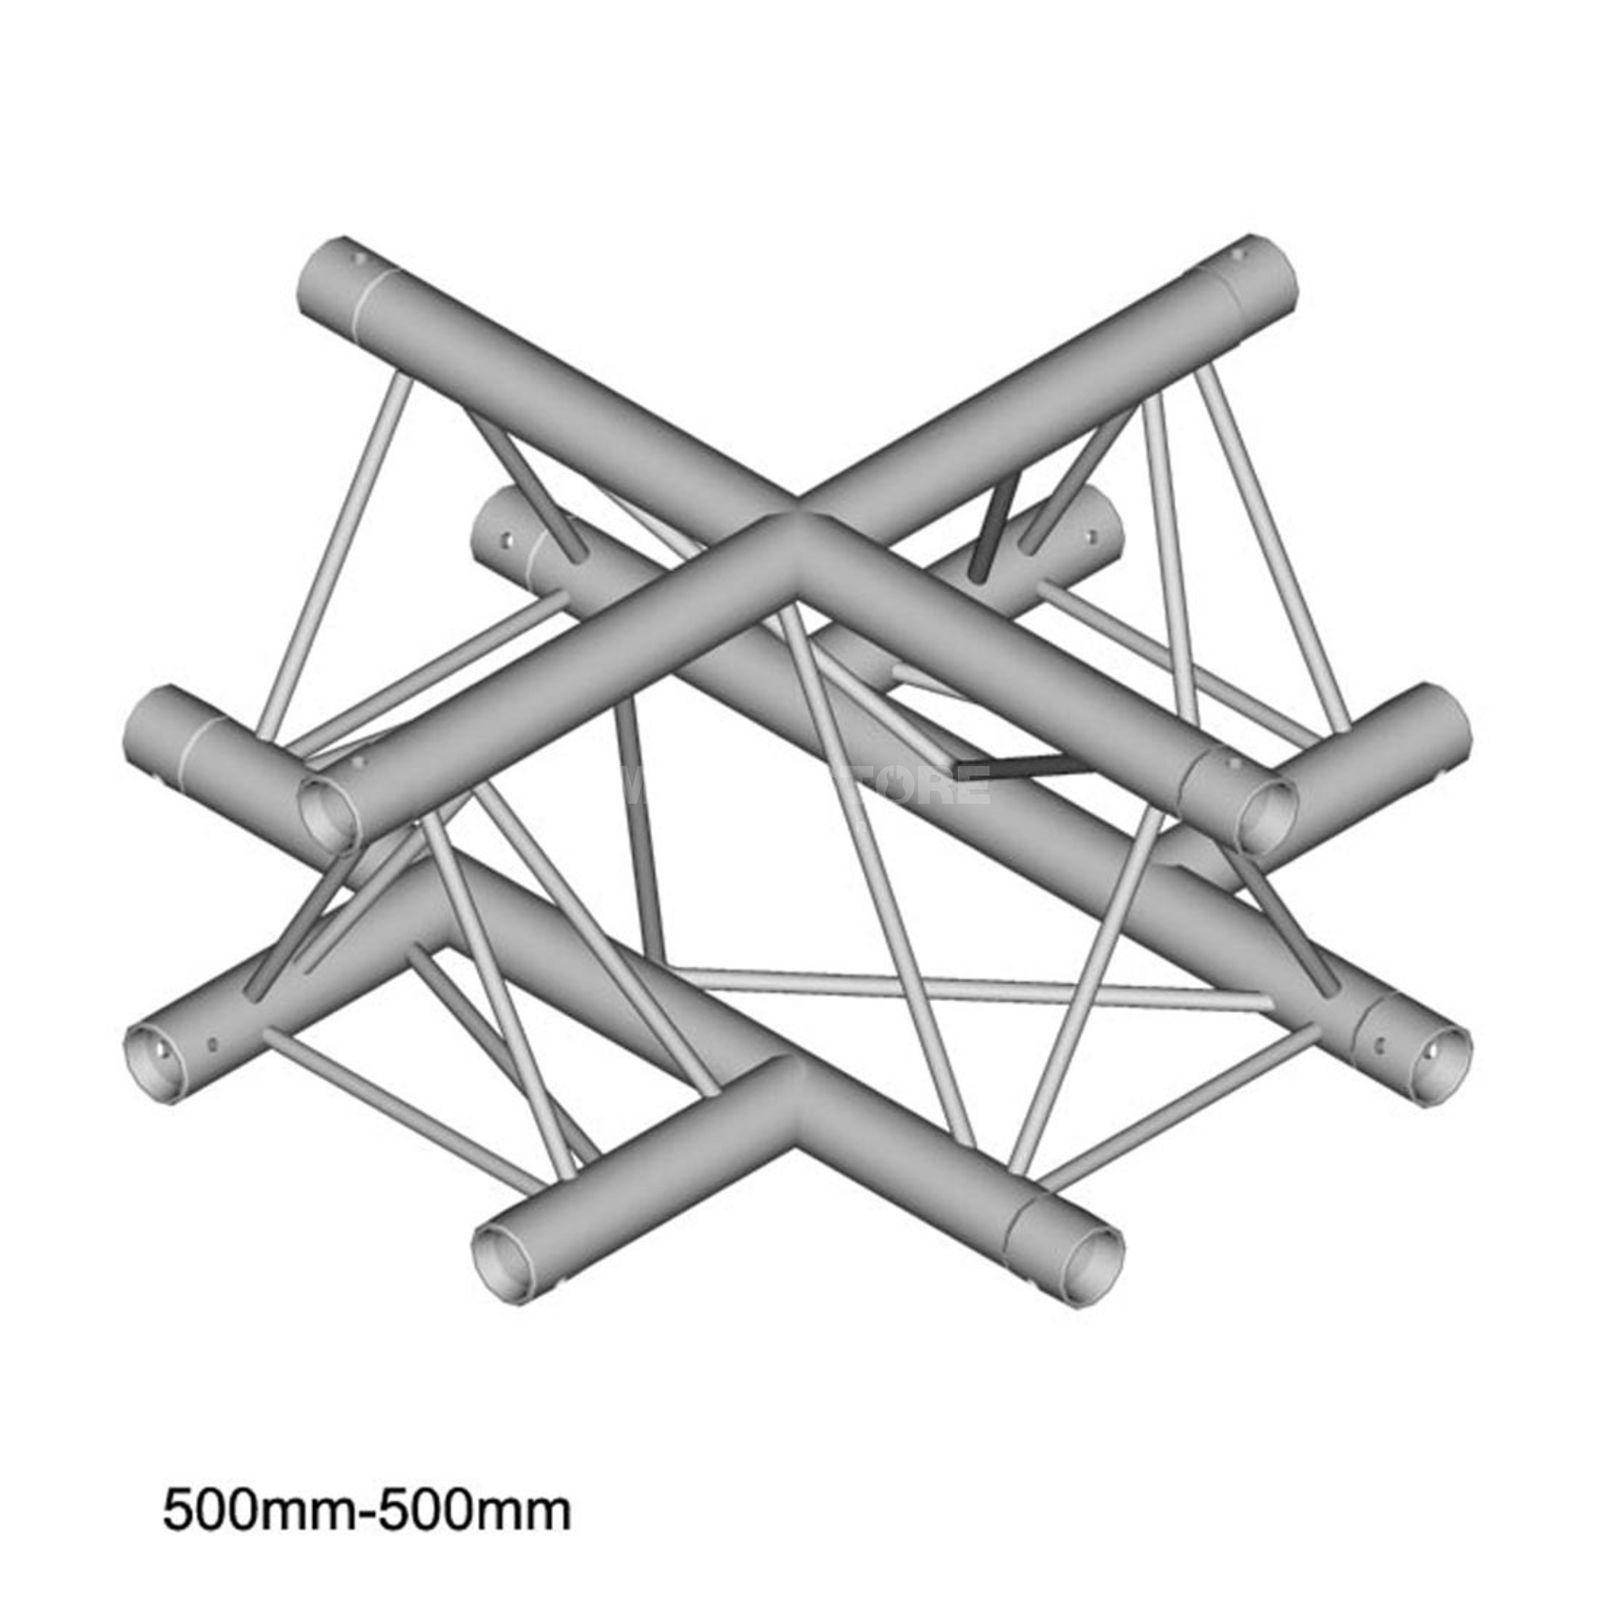 DURATRUSS DT 23 C41, 3-Point Truss Cross, 4-Way Produktbillede